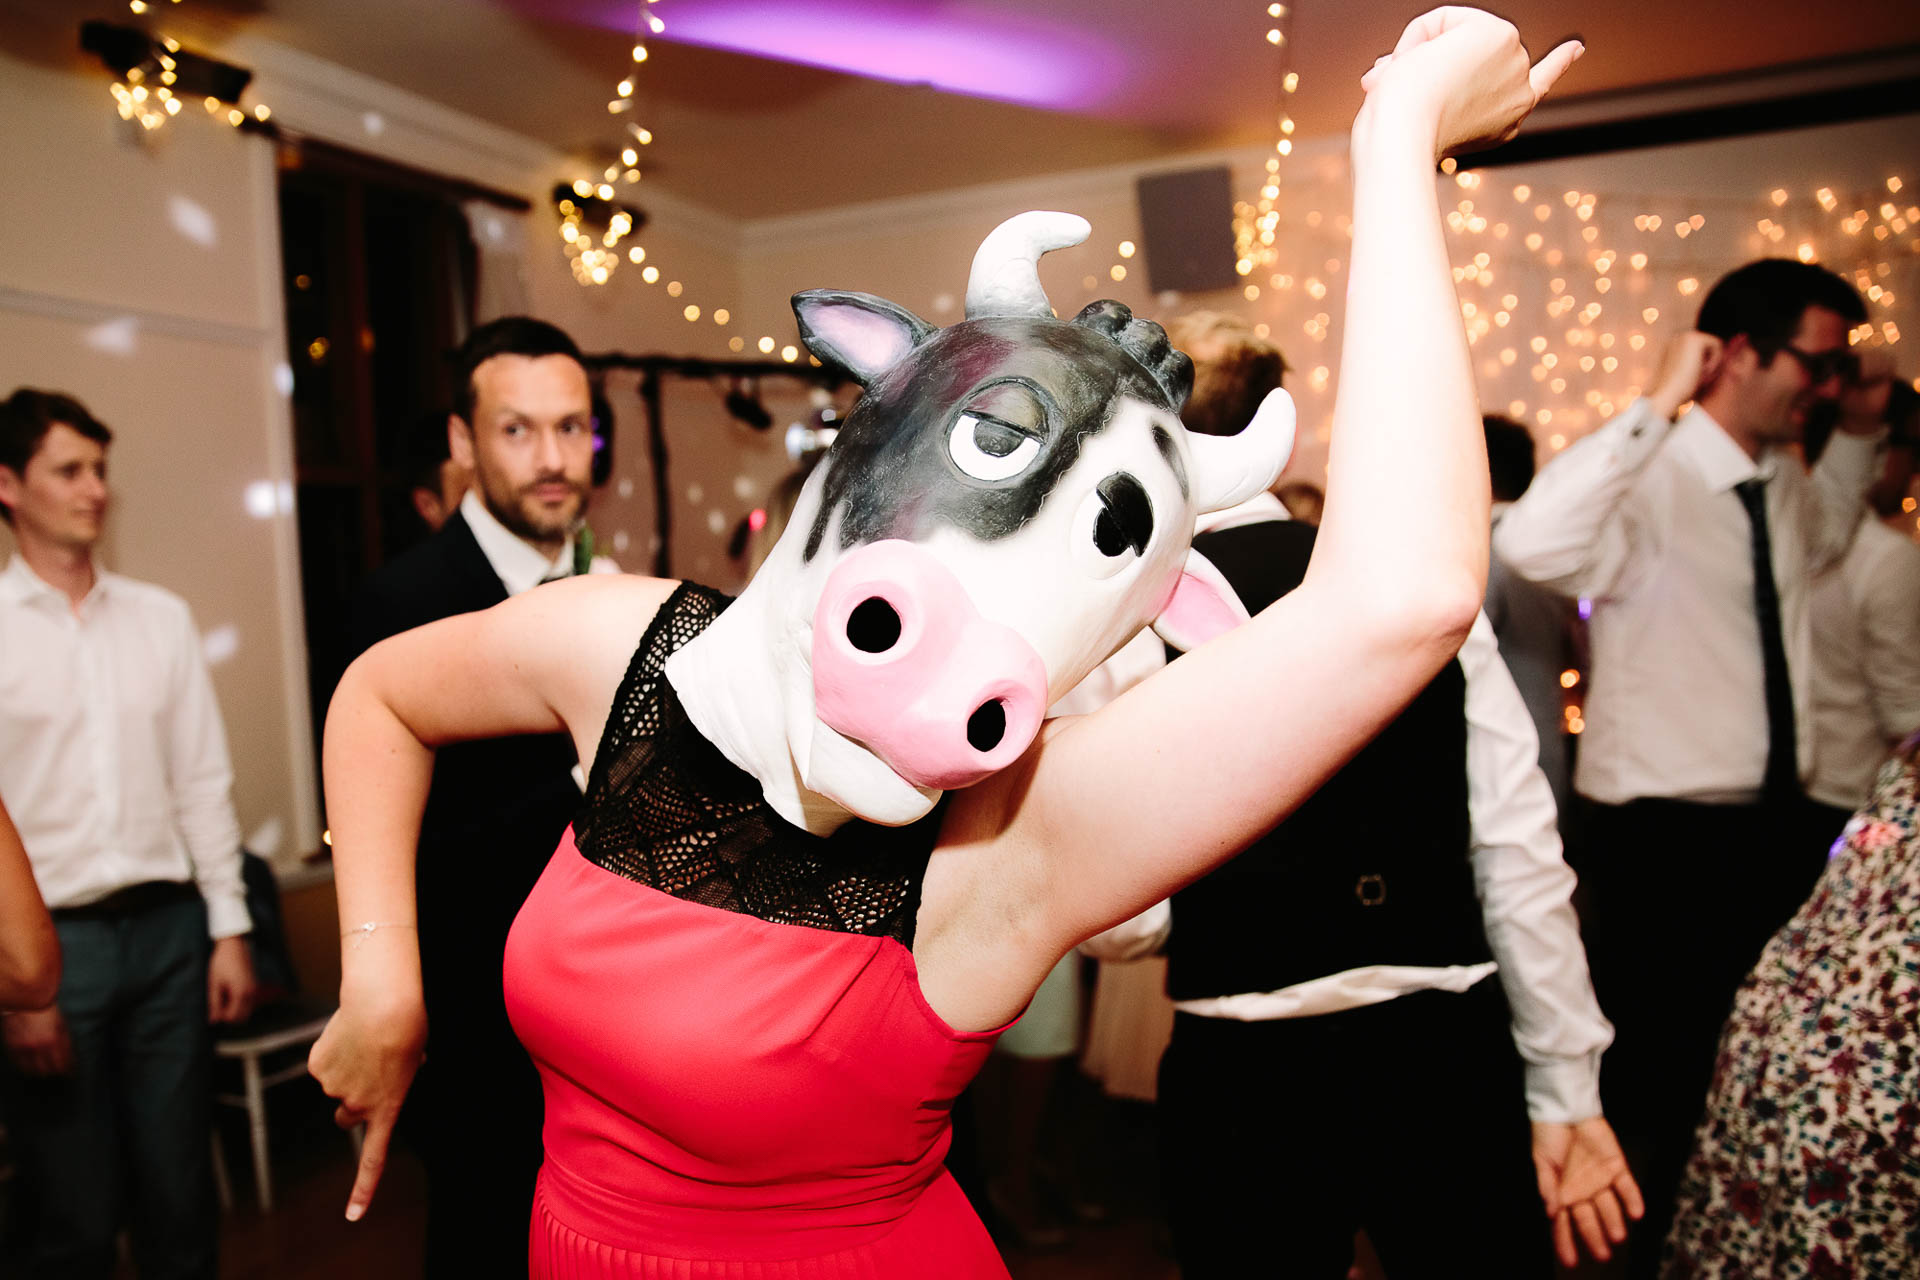 How To Dance At A Wedding.How To Have A Buzzing Dance Floor At Your Wedding